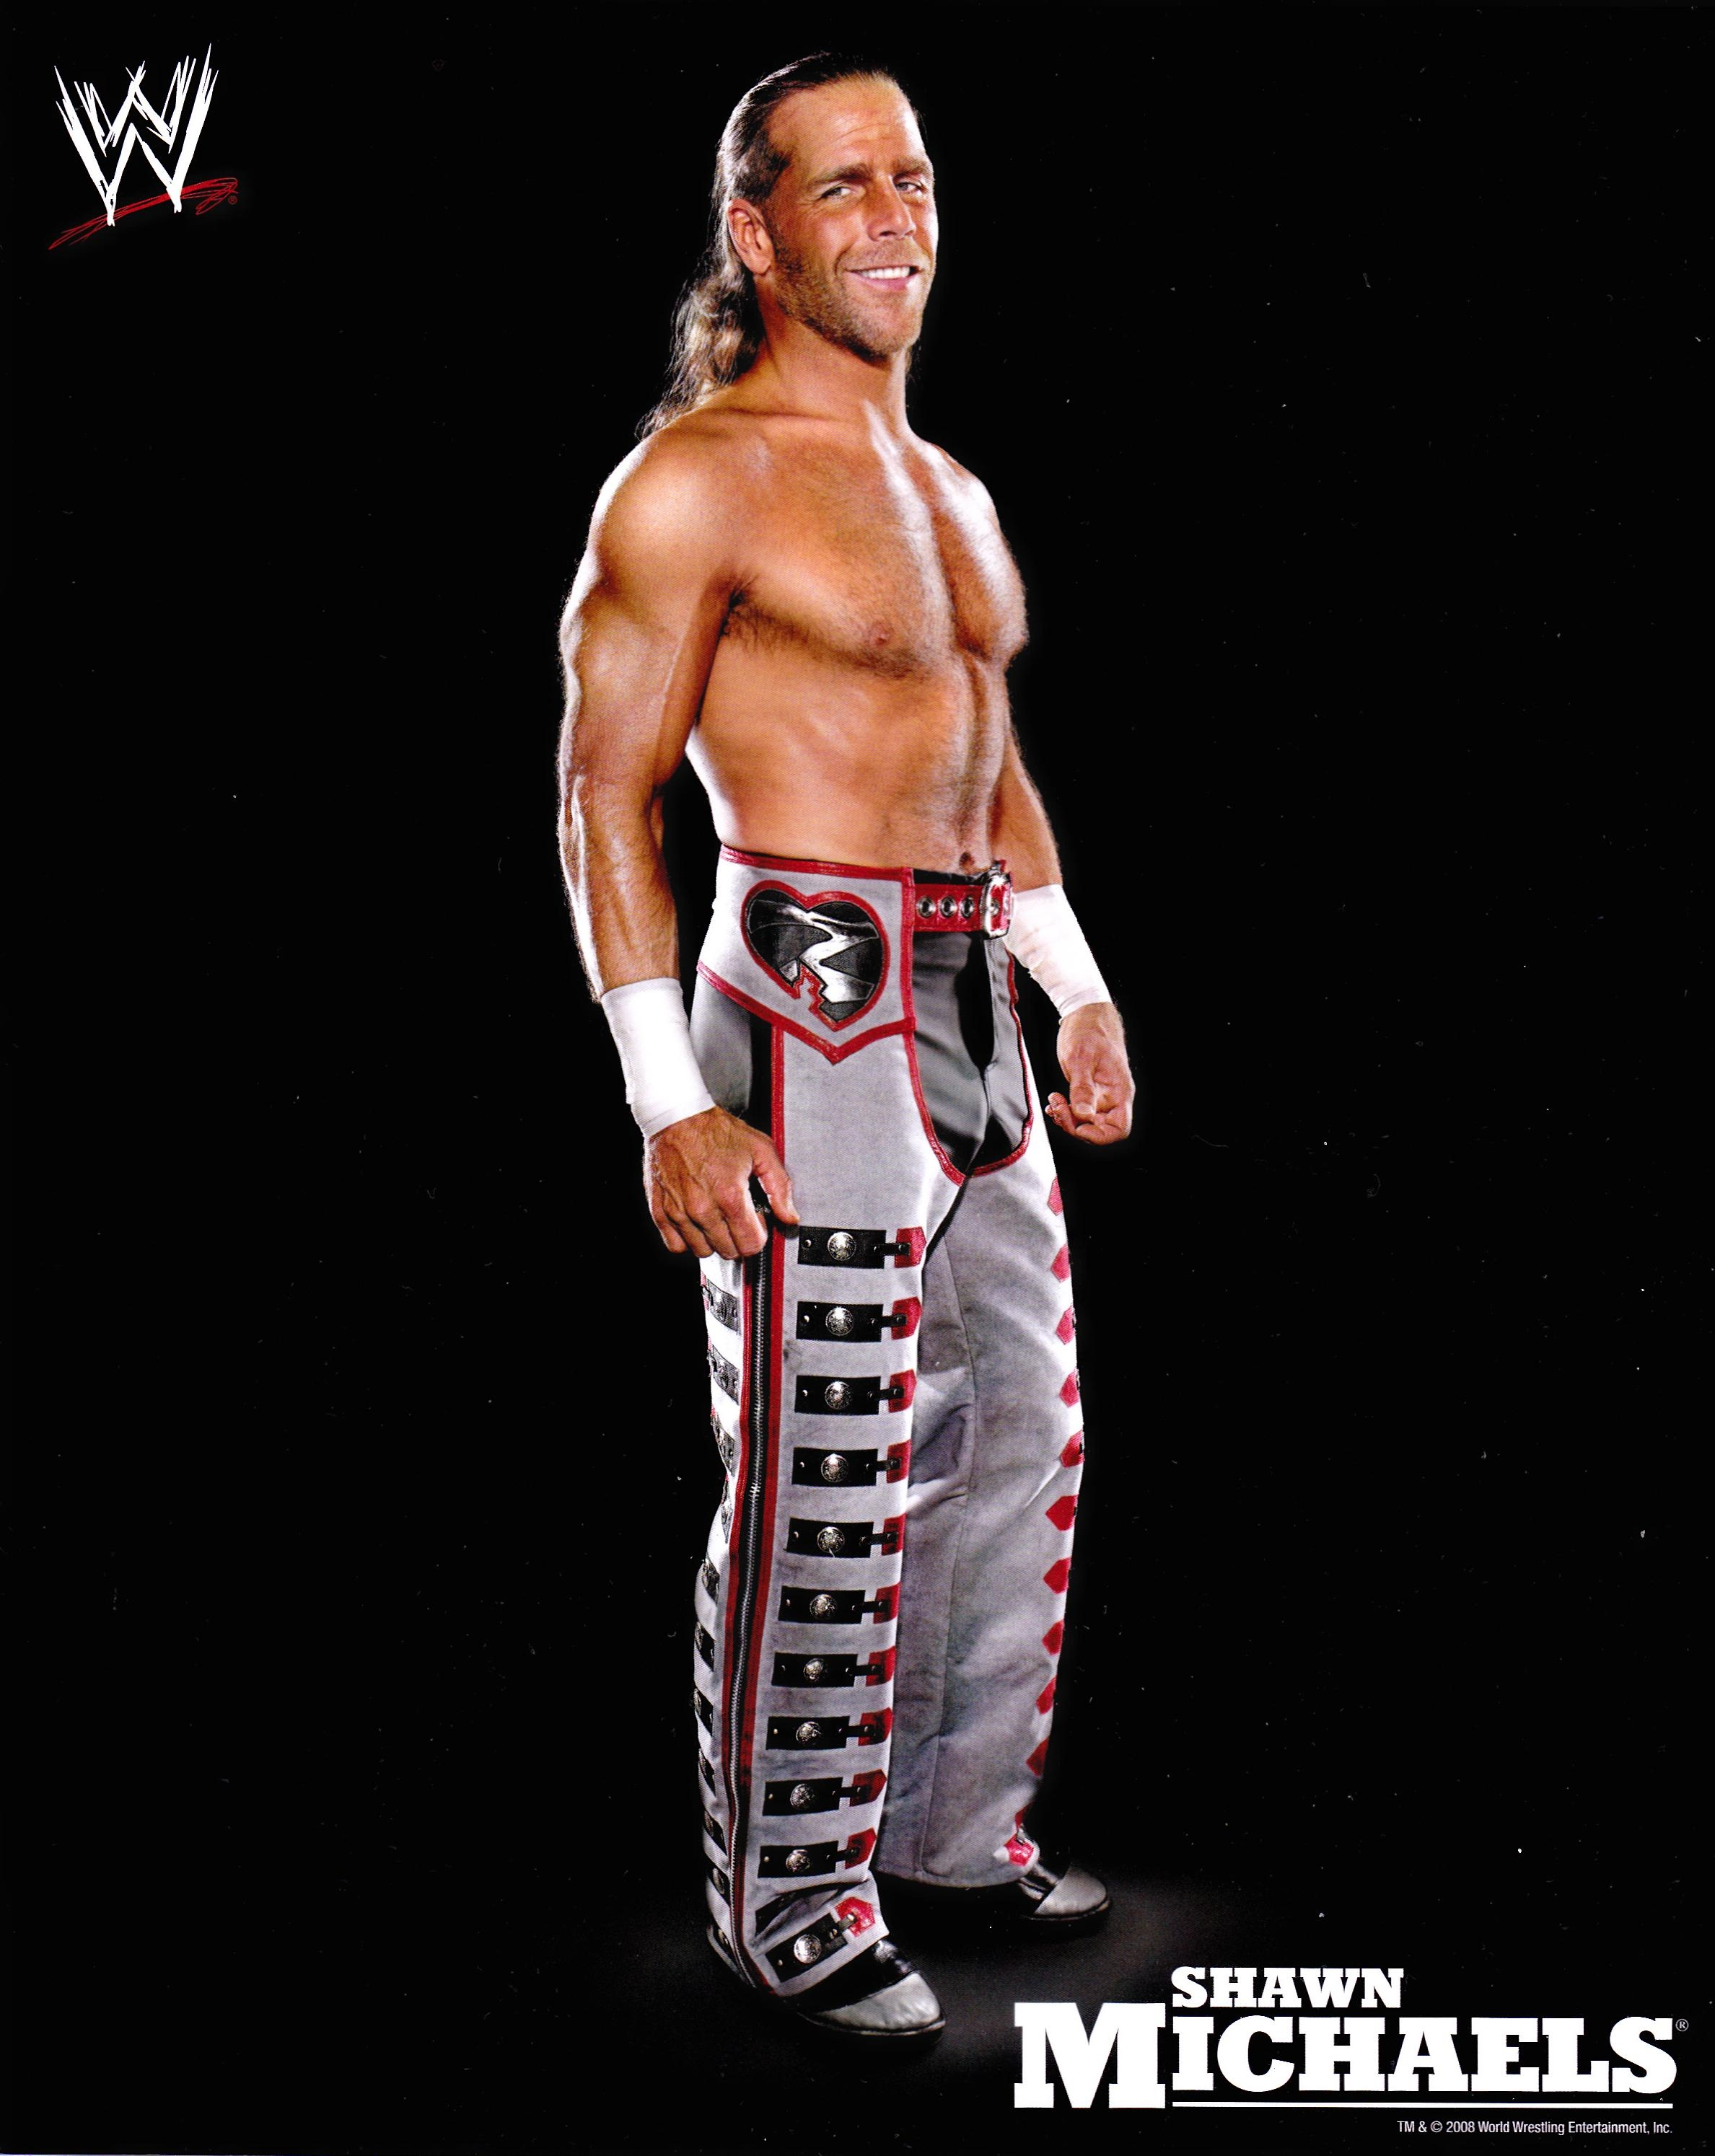 Shawn Michaels Wallpapers Hd Wallpapers